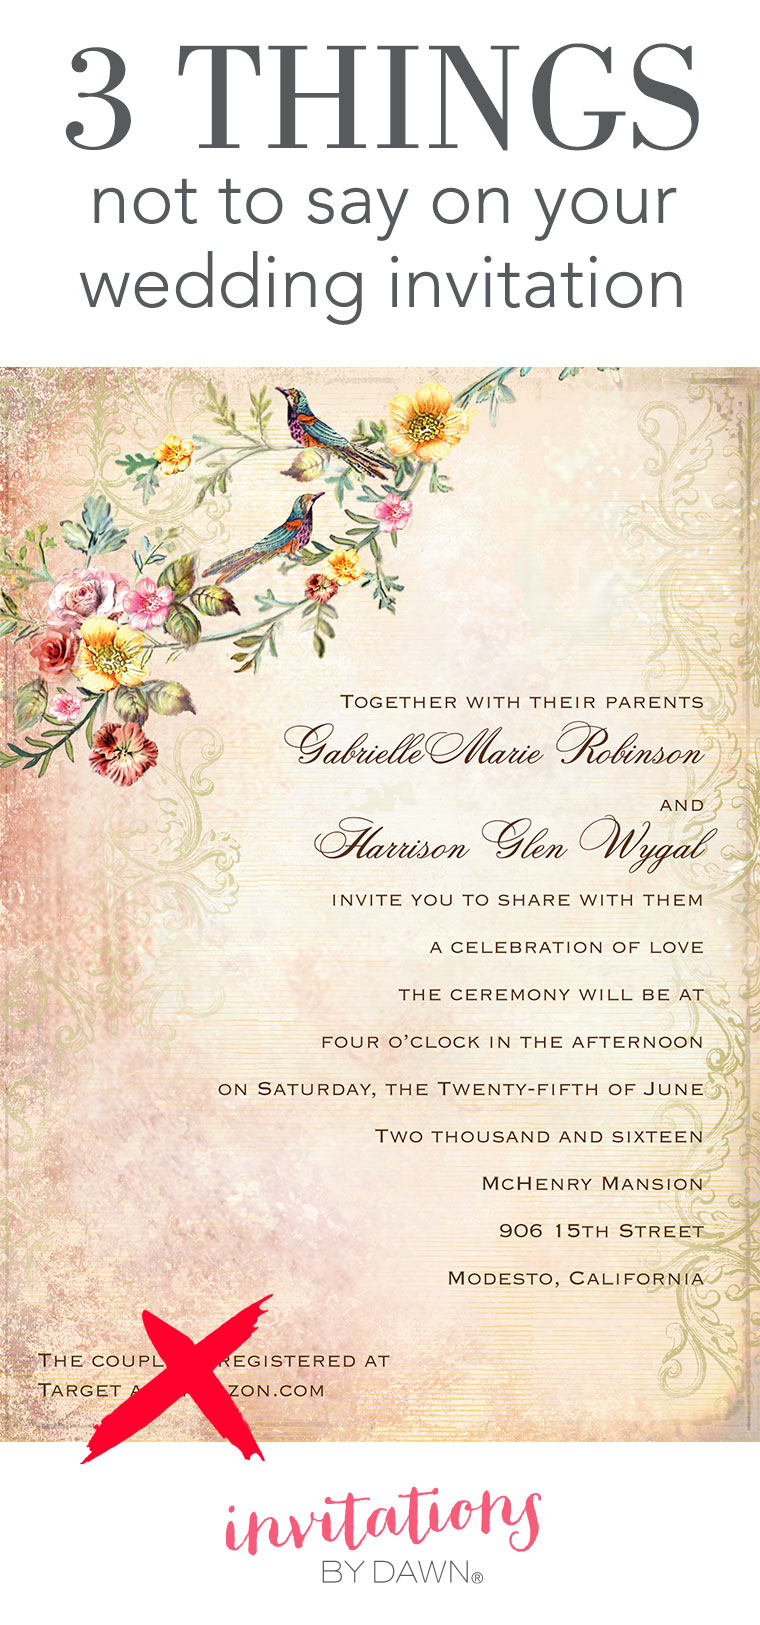 3 Things Not to Say on Your Wedding Invitation